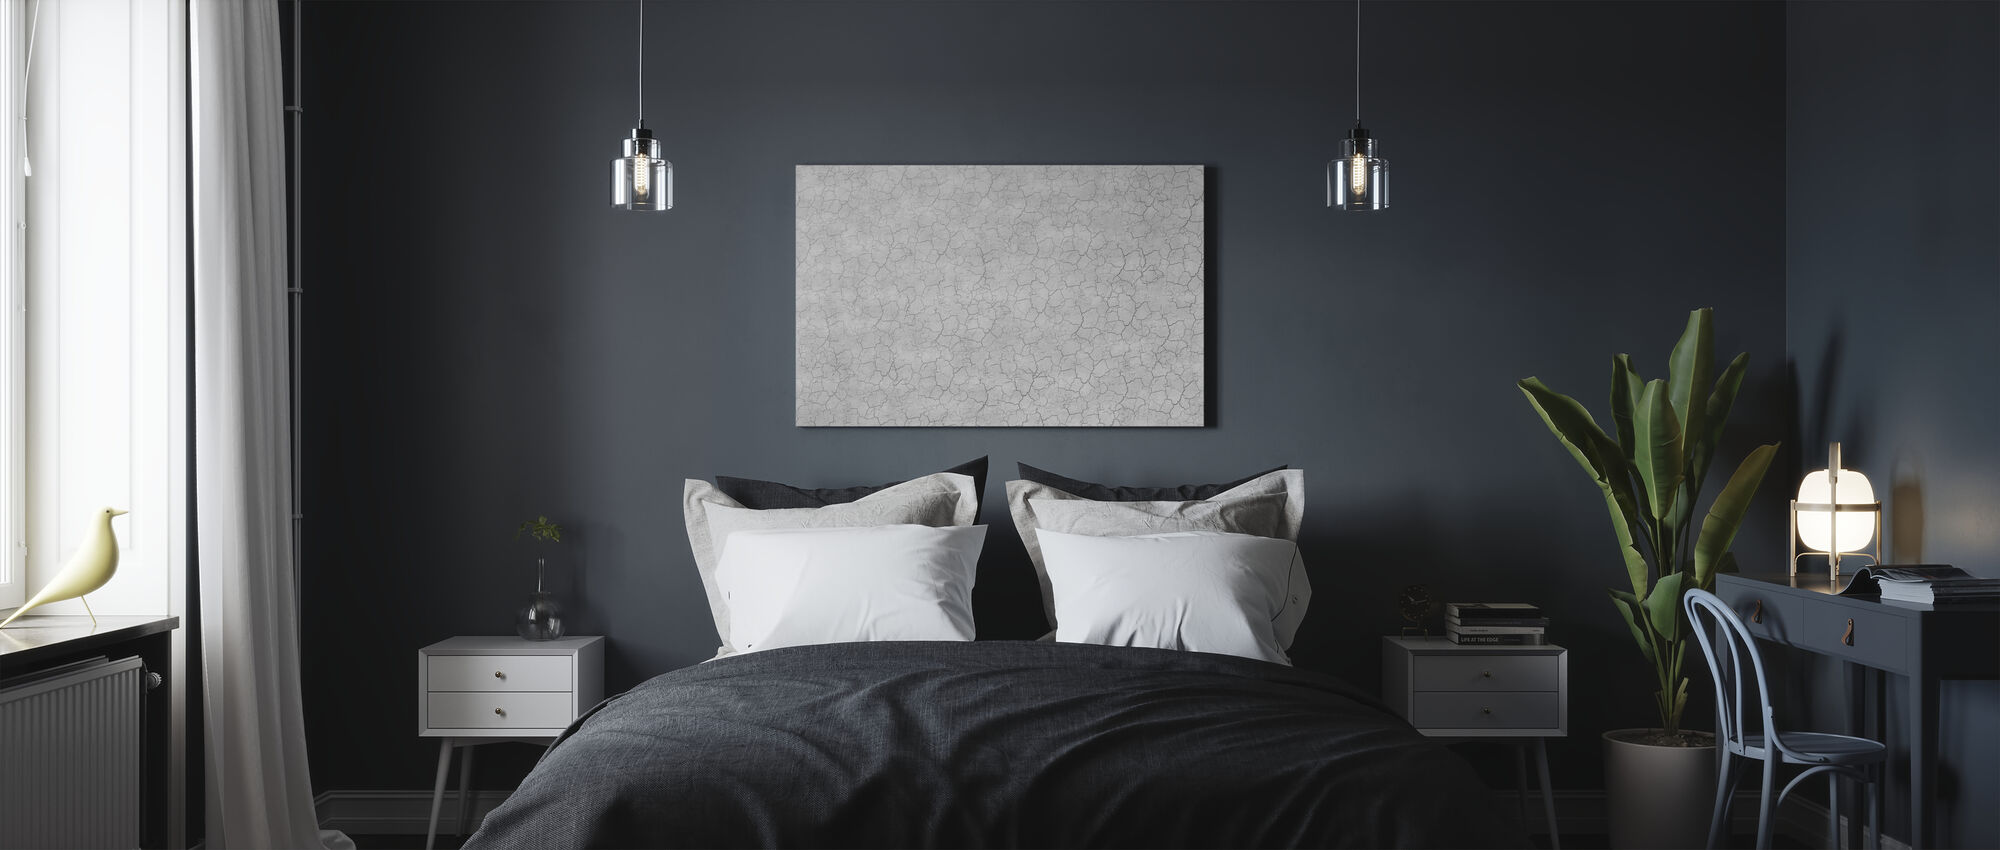 Entirely Cracked Wall - Canvas print - Bedroom